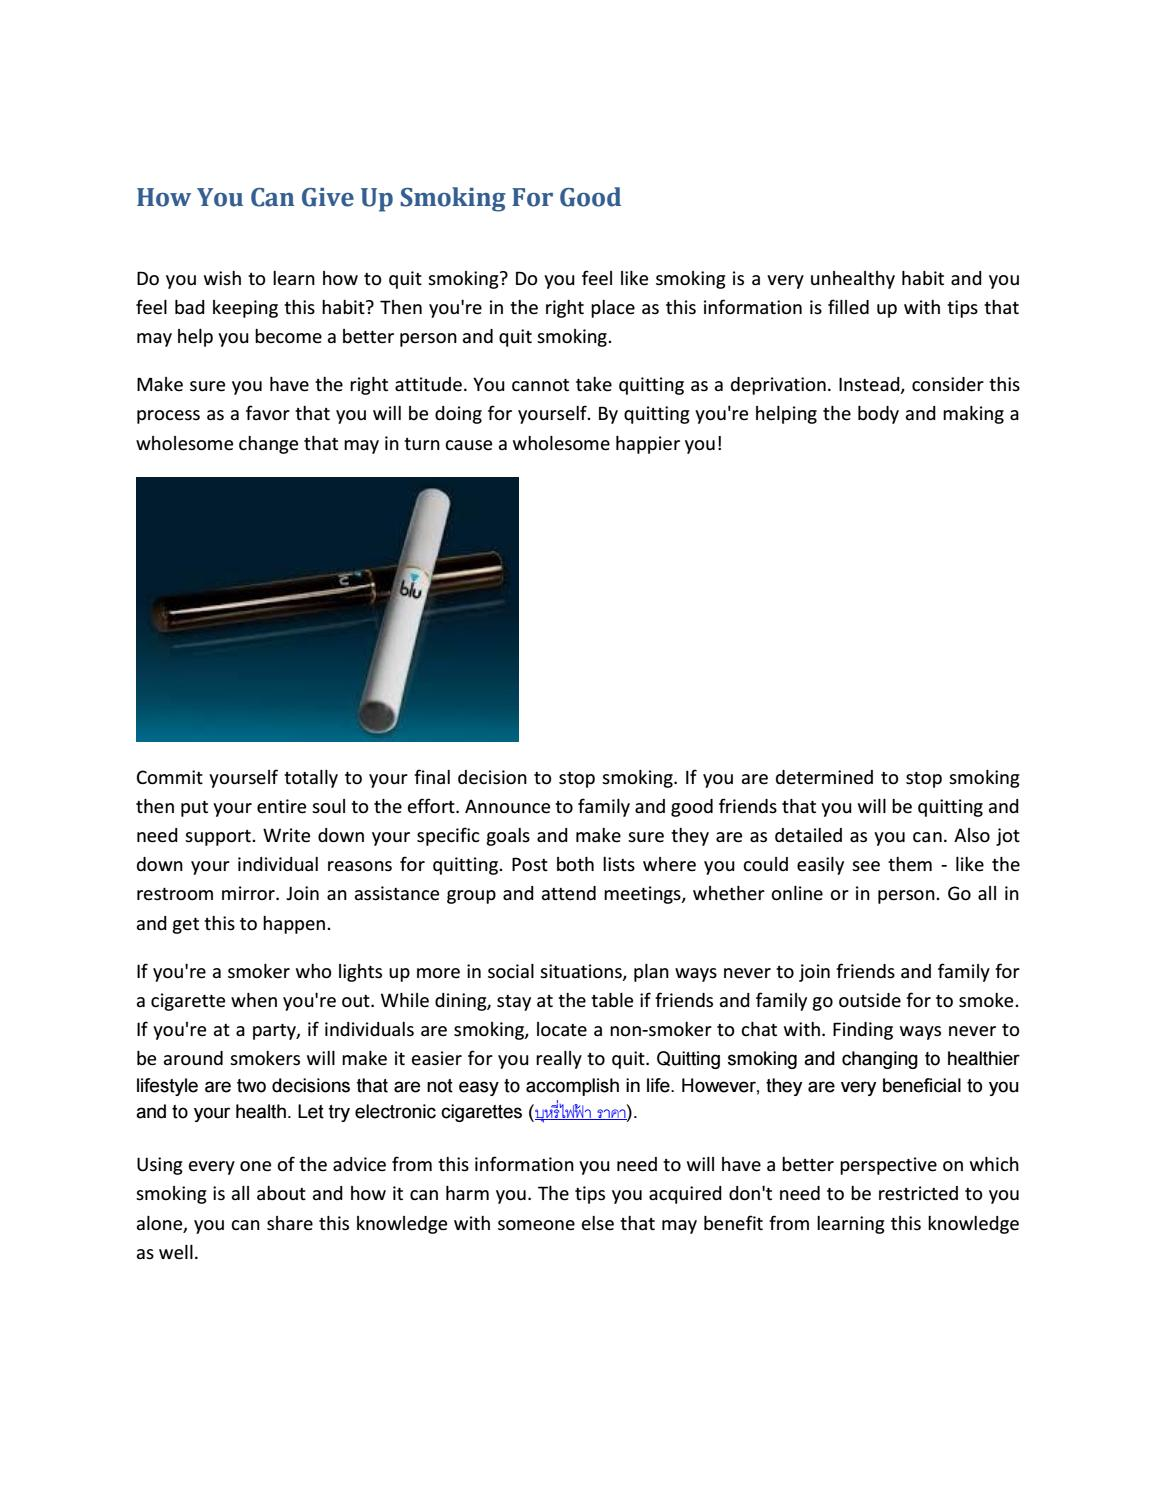 How You Can Give Up Smoking For Good By Kurtmalone Issuu